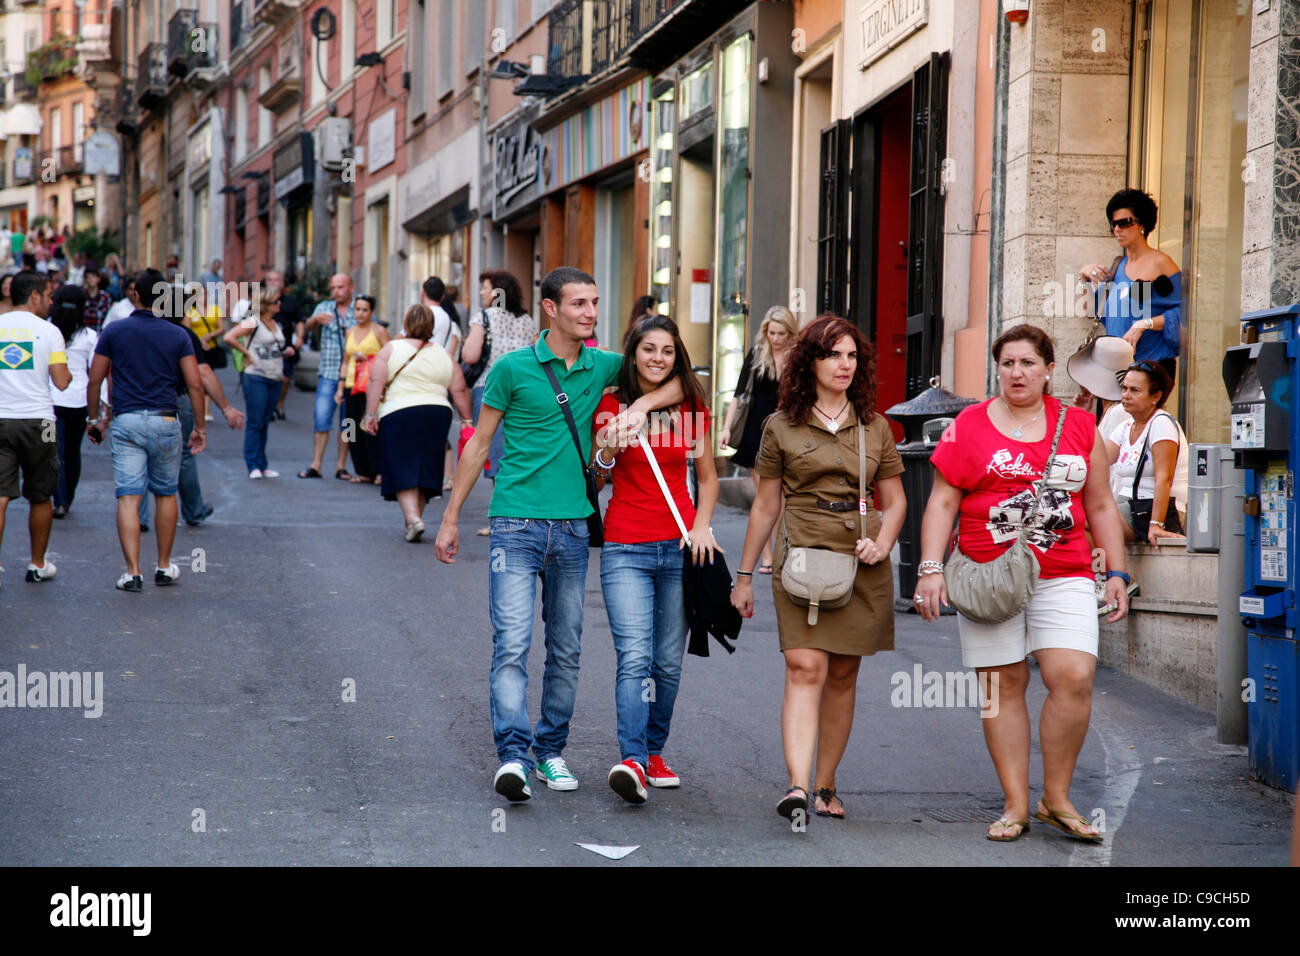 People walking at Via Giuseppe Manno, a pedestrian street with many shops, Cagliari, Sardinia, Italy. - Stock Image